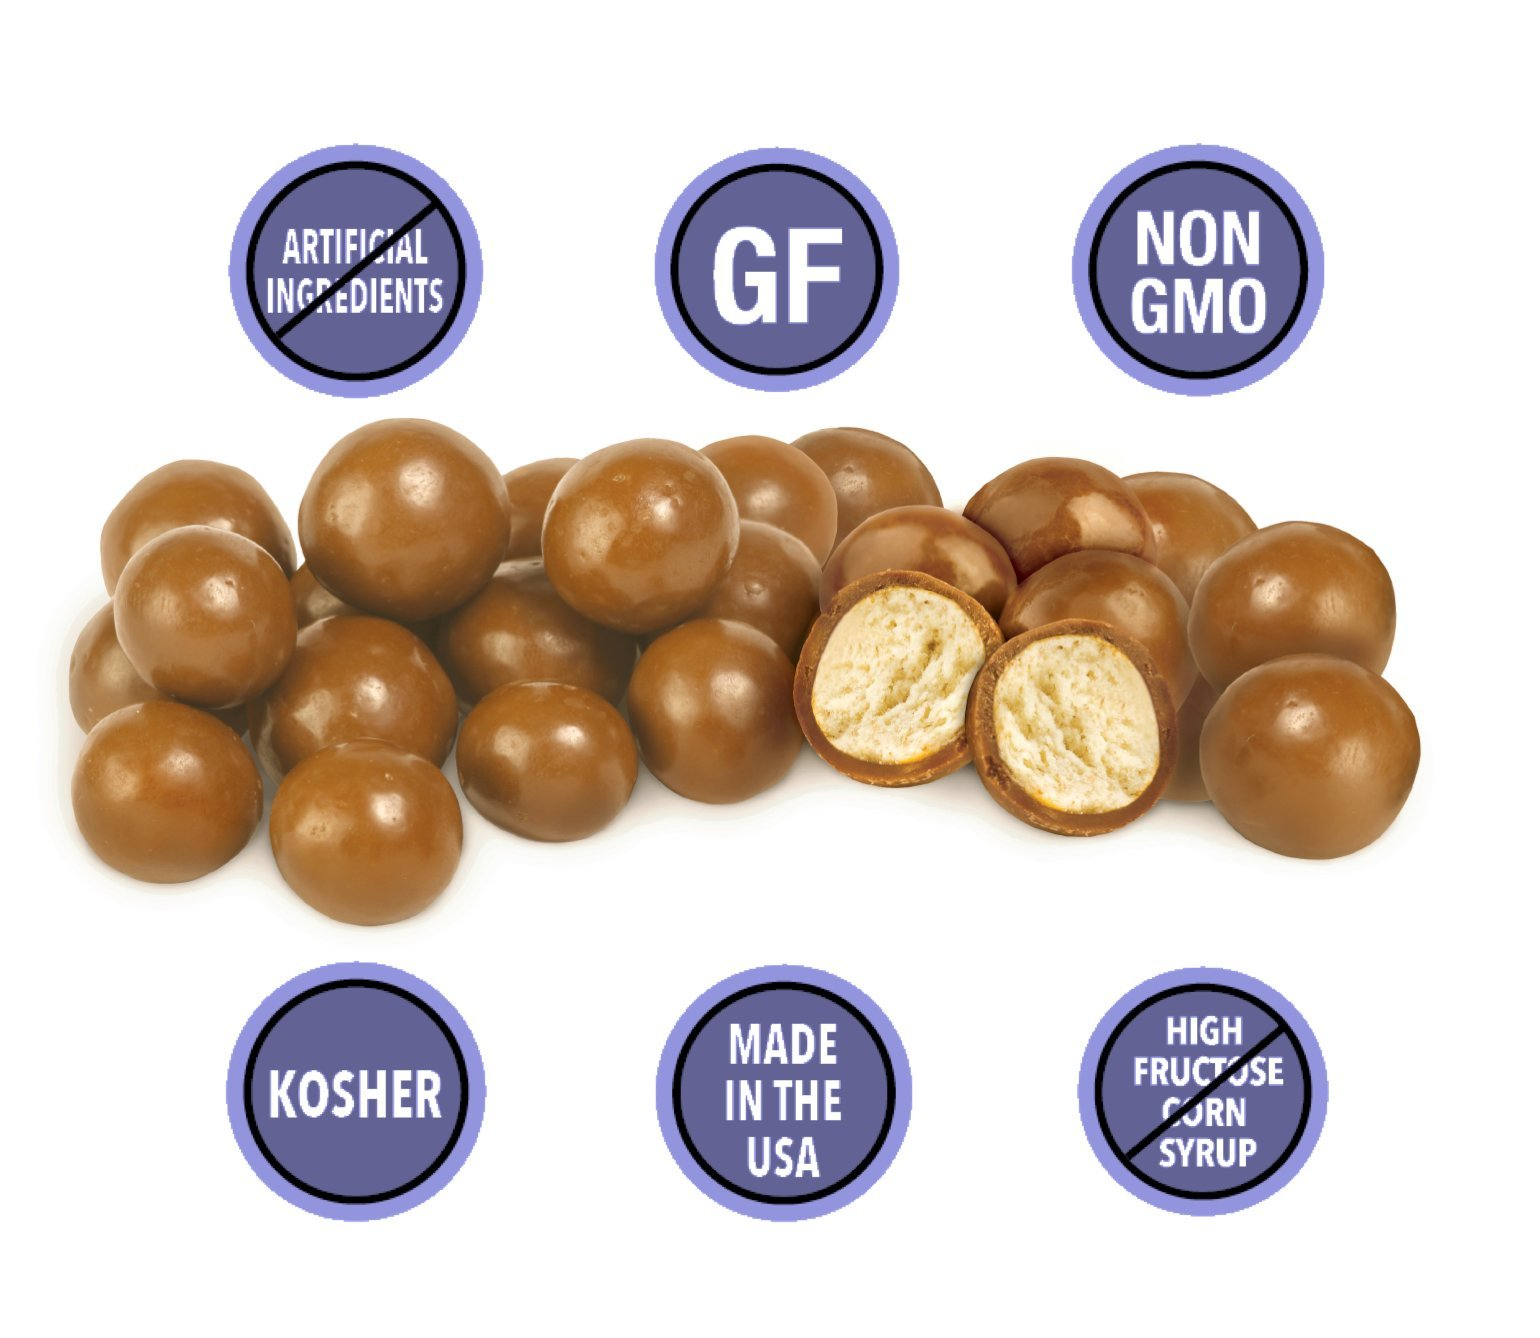 GLUTEN-FREE SALTED CARAMEL Covered Pretzel Balls (3-Pack) - Lovely Candy Co. (3) 6oz Bags - NON-GMO, NO HFCS, RBST-FREE & Gluten-Free, Consciously crafted in the USA!